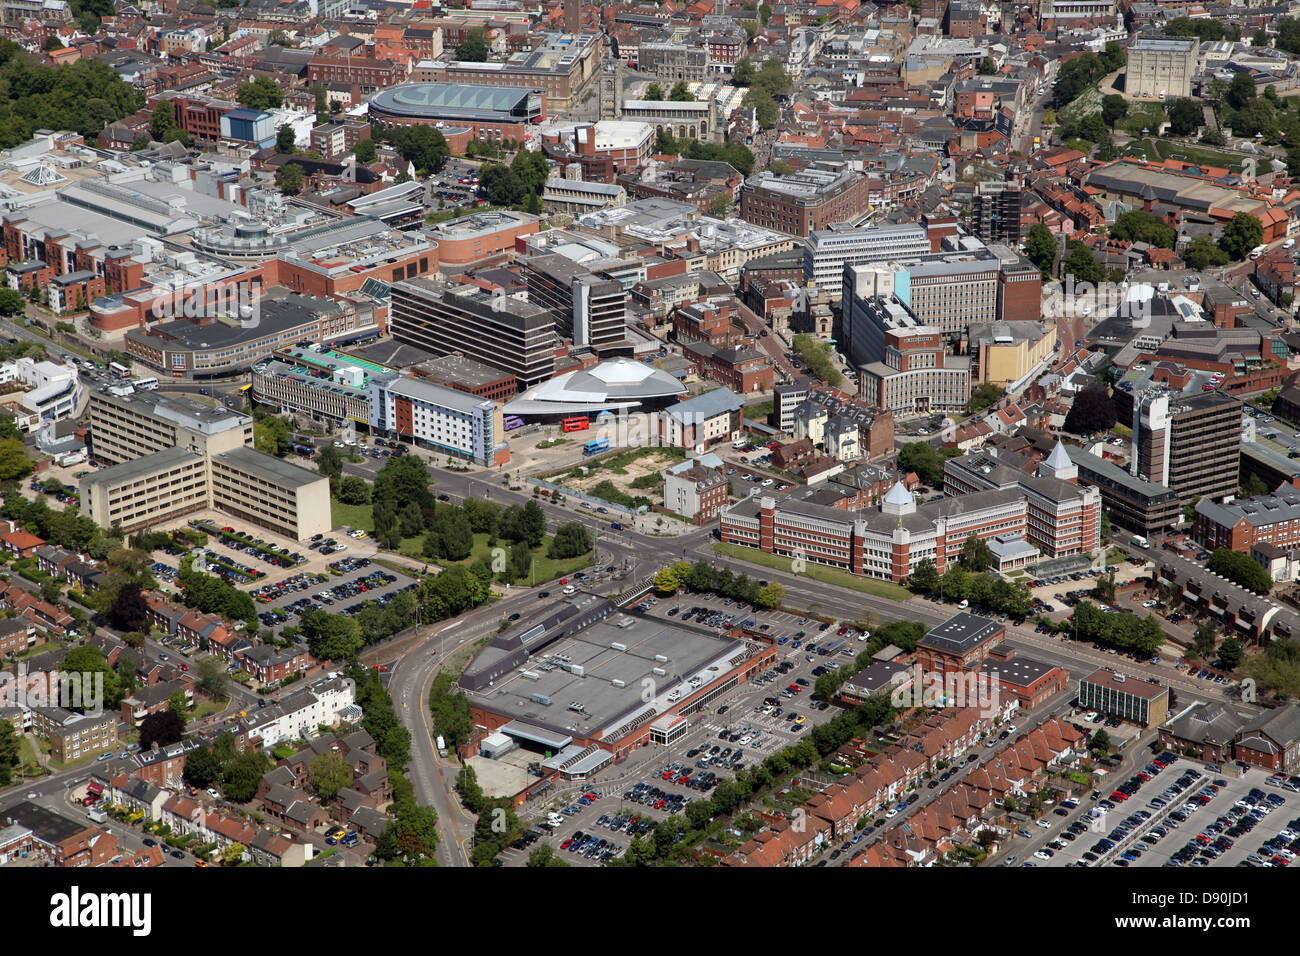 aerial view of Norwich city centre - Stock Image